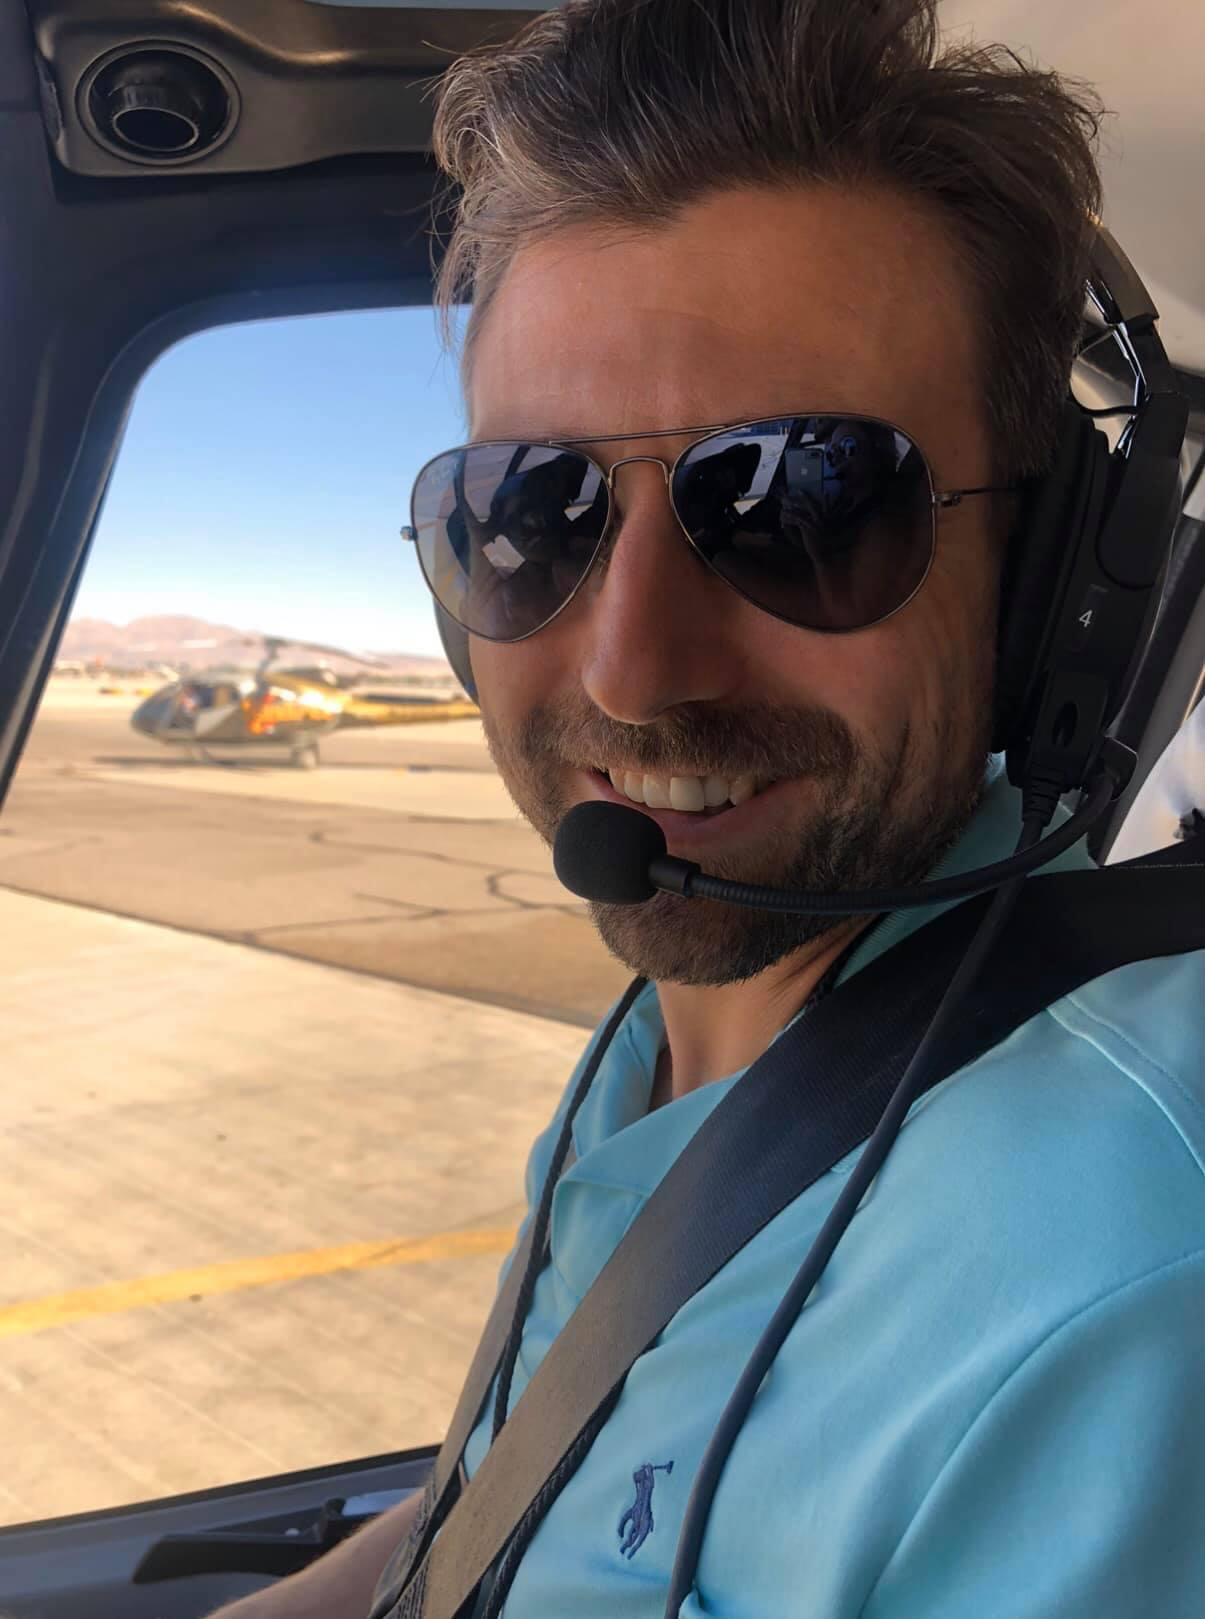 Helicopter pilot!